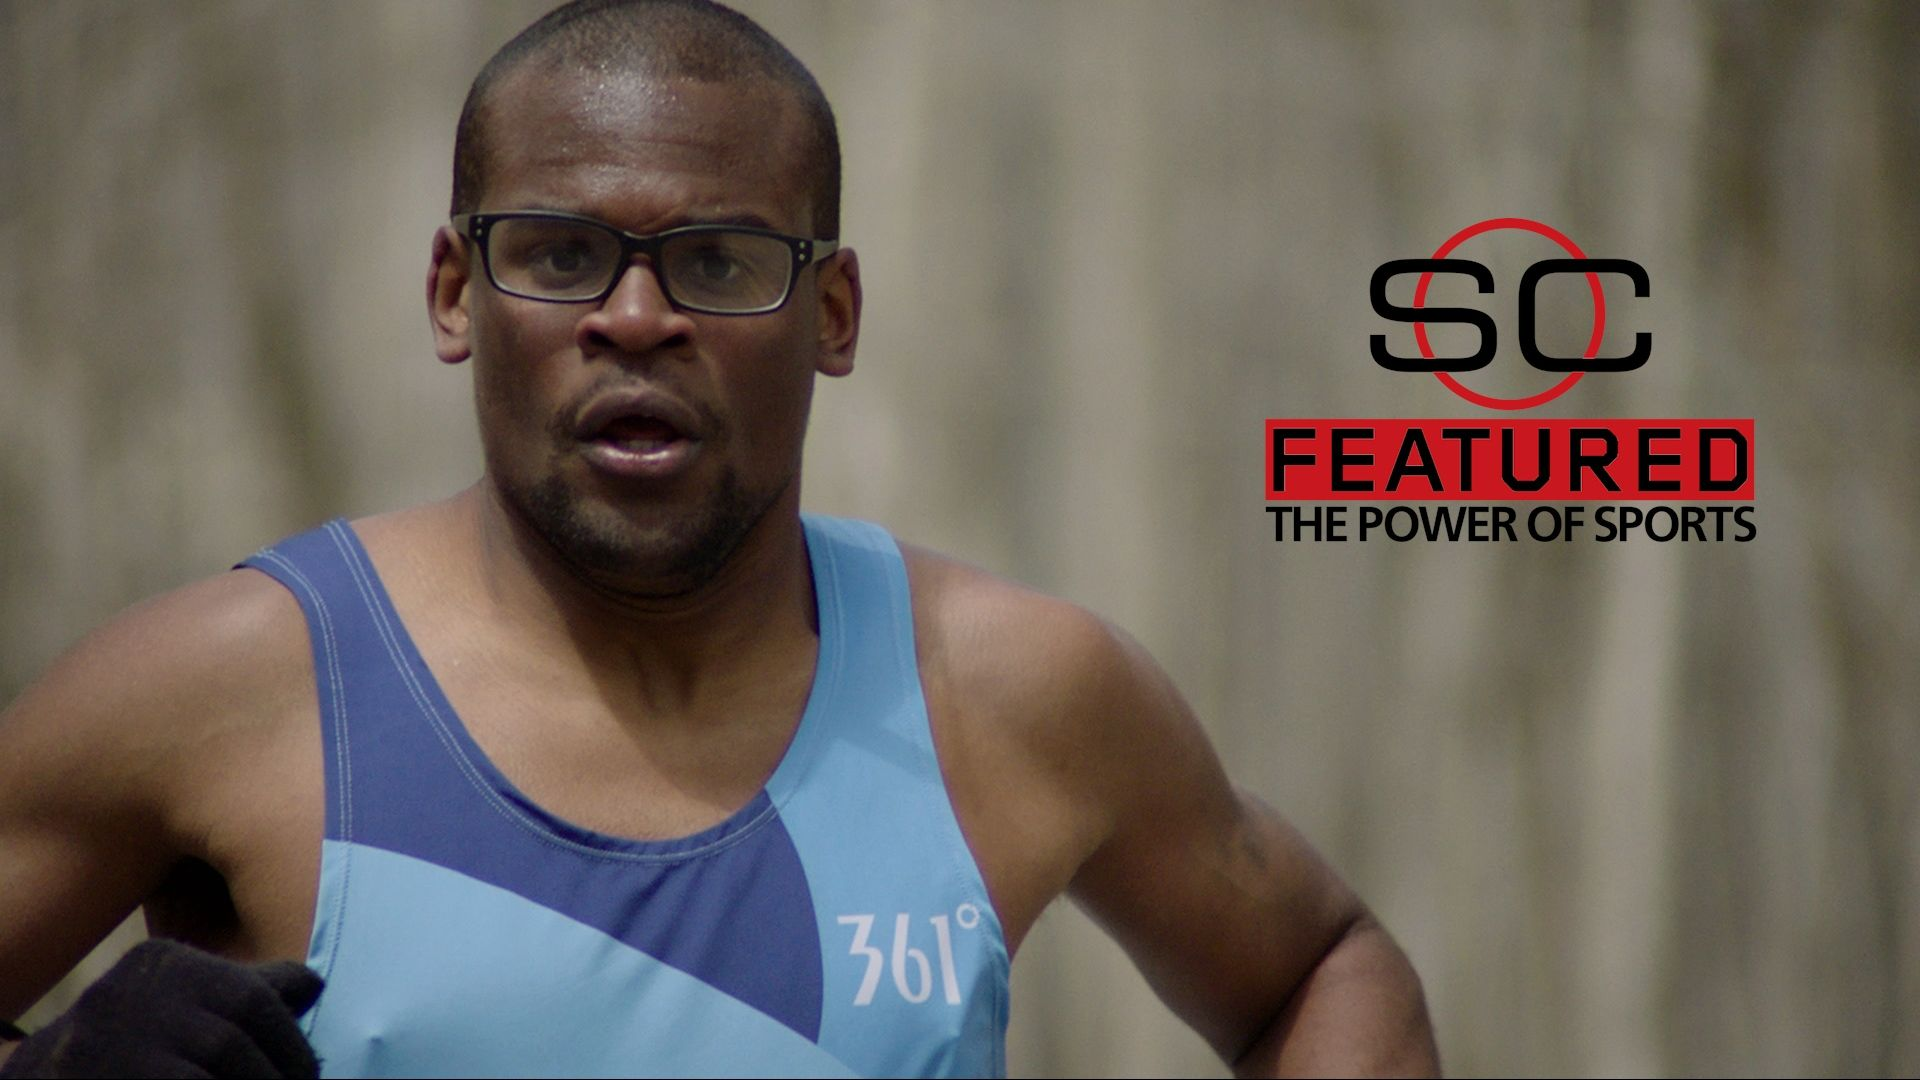 SC Featured: Special Olympics runner deserves your respect